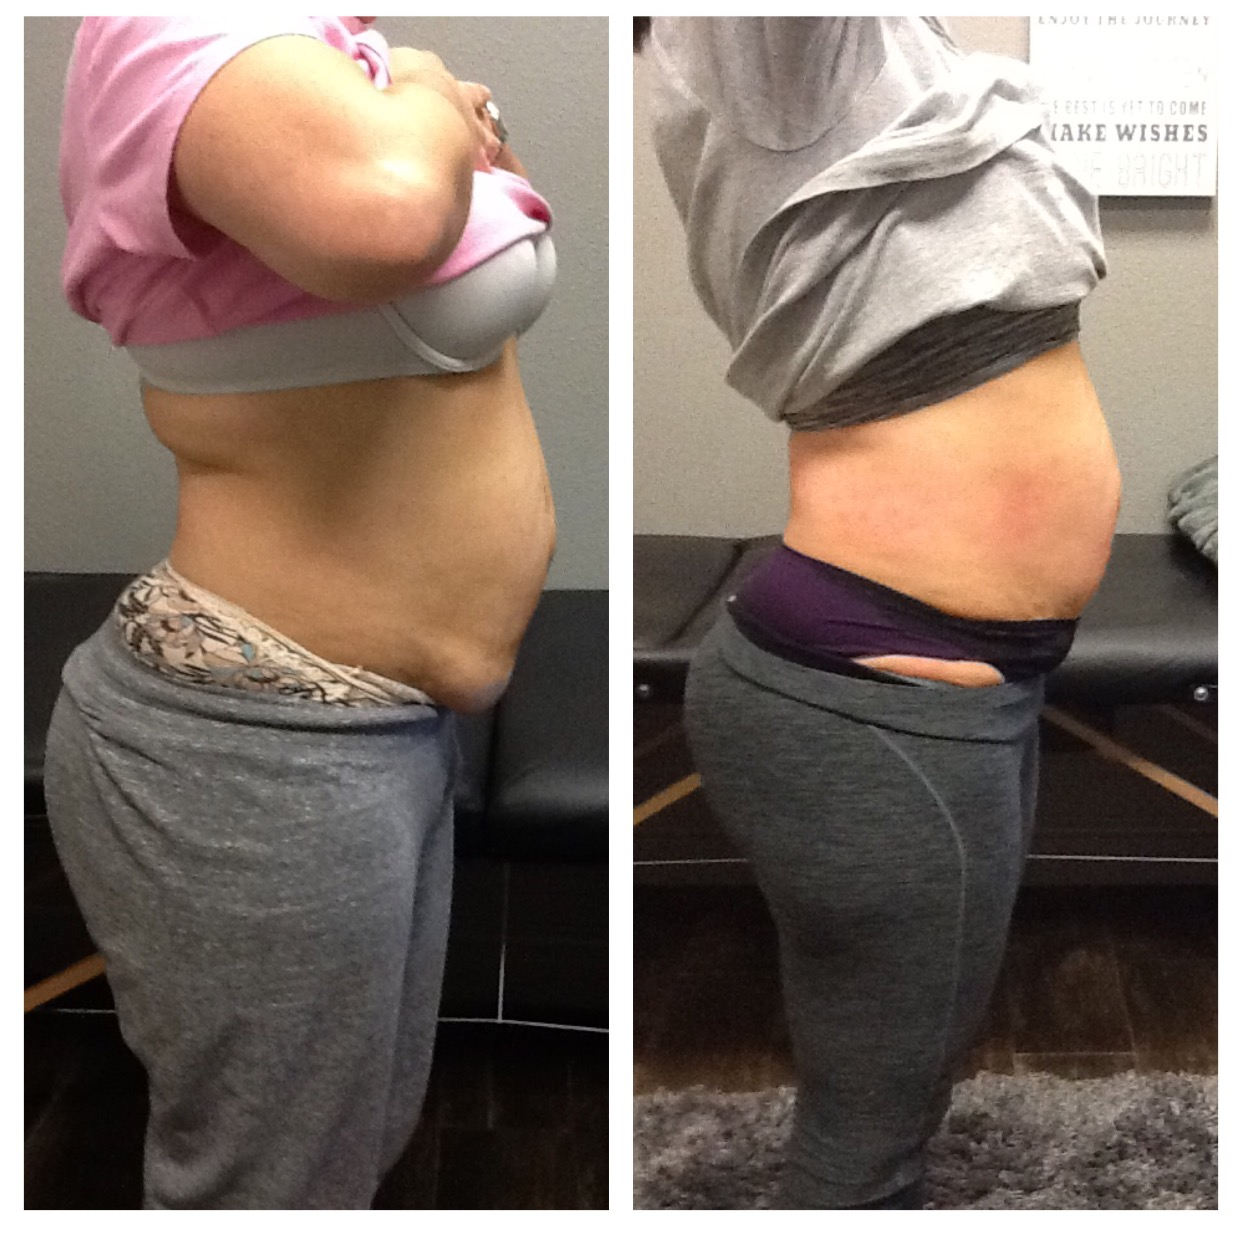 After 6 Lipo Body Shaping System Treatments and 6 Cellulite Massage Treatments - Results after 2 days a week for 3 weeks.